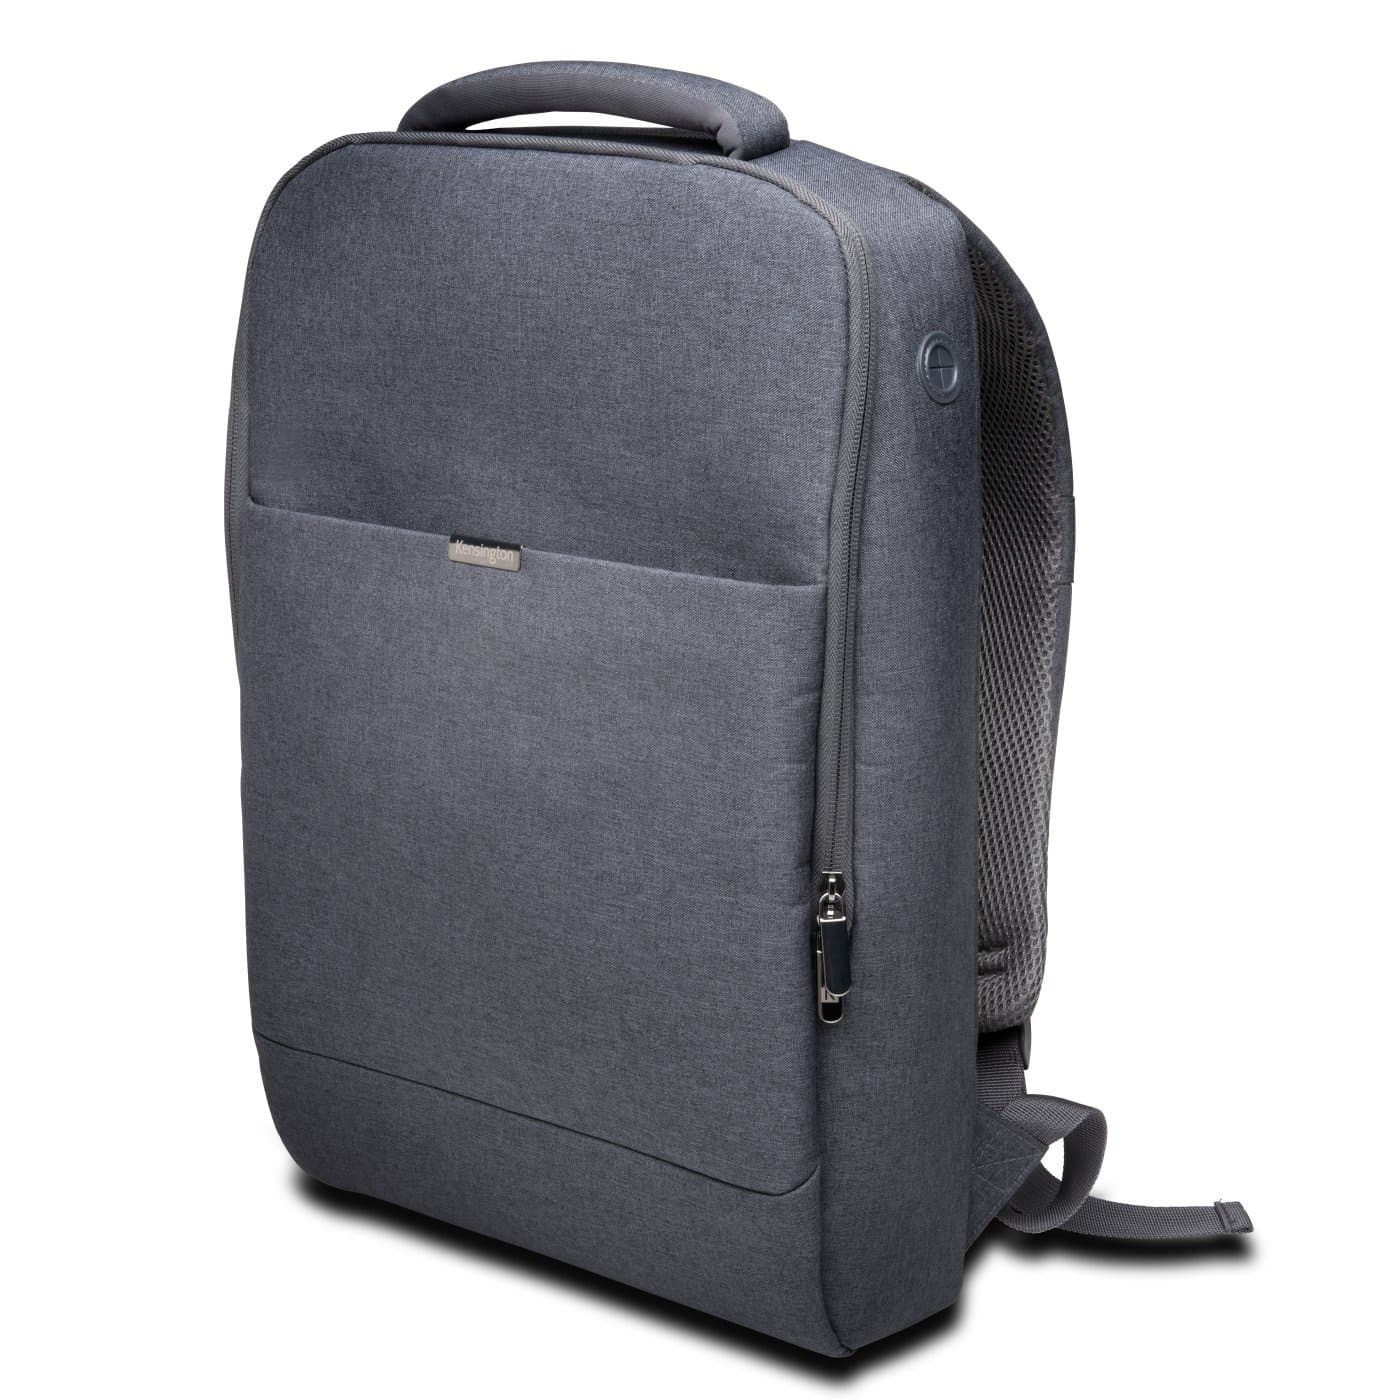 Kensington - Products - Laptop Bags - Backpacks - LM150 Backpack ...